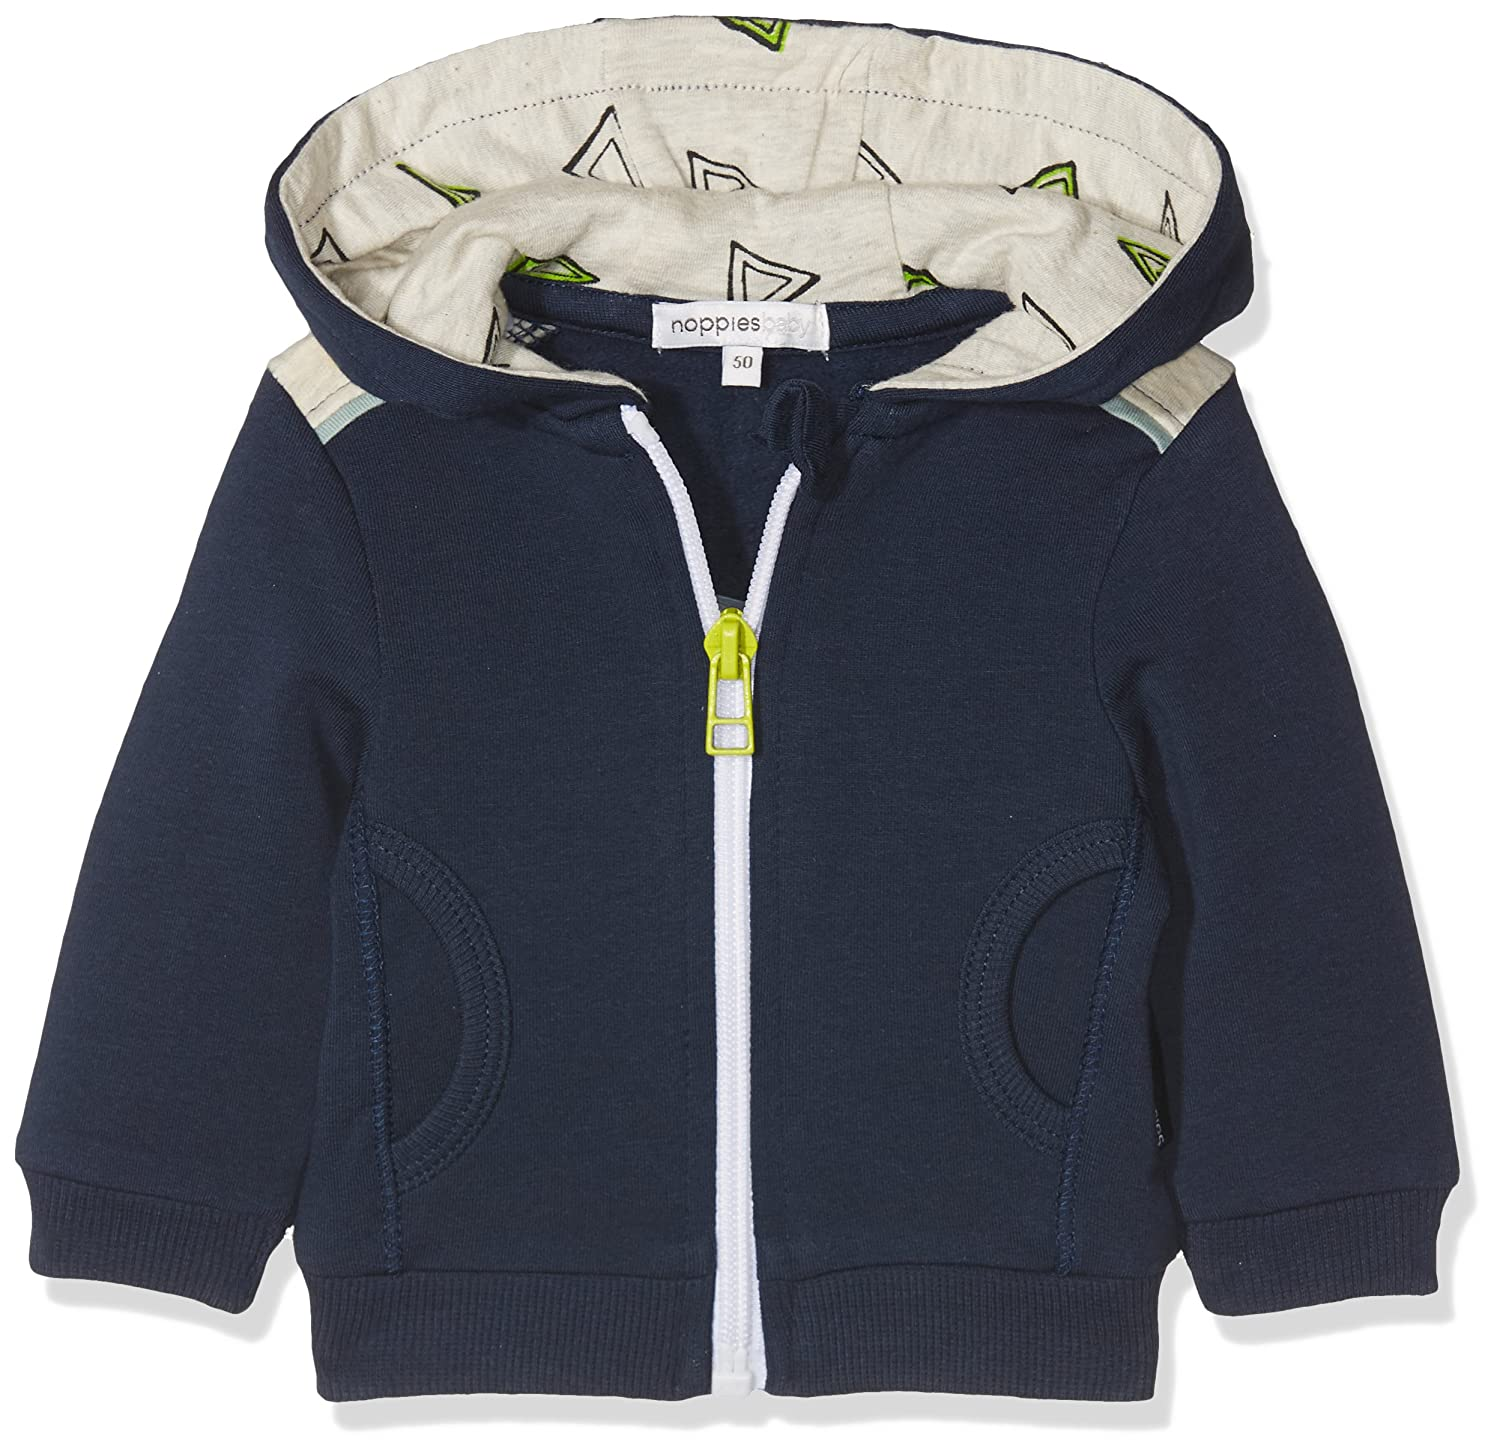 Noppies Baby Und Kinder Jungen Strickjacke Kingsland